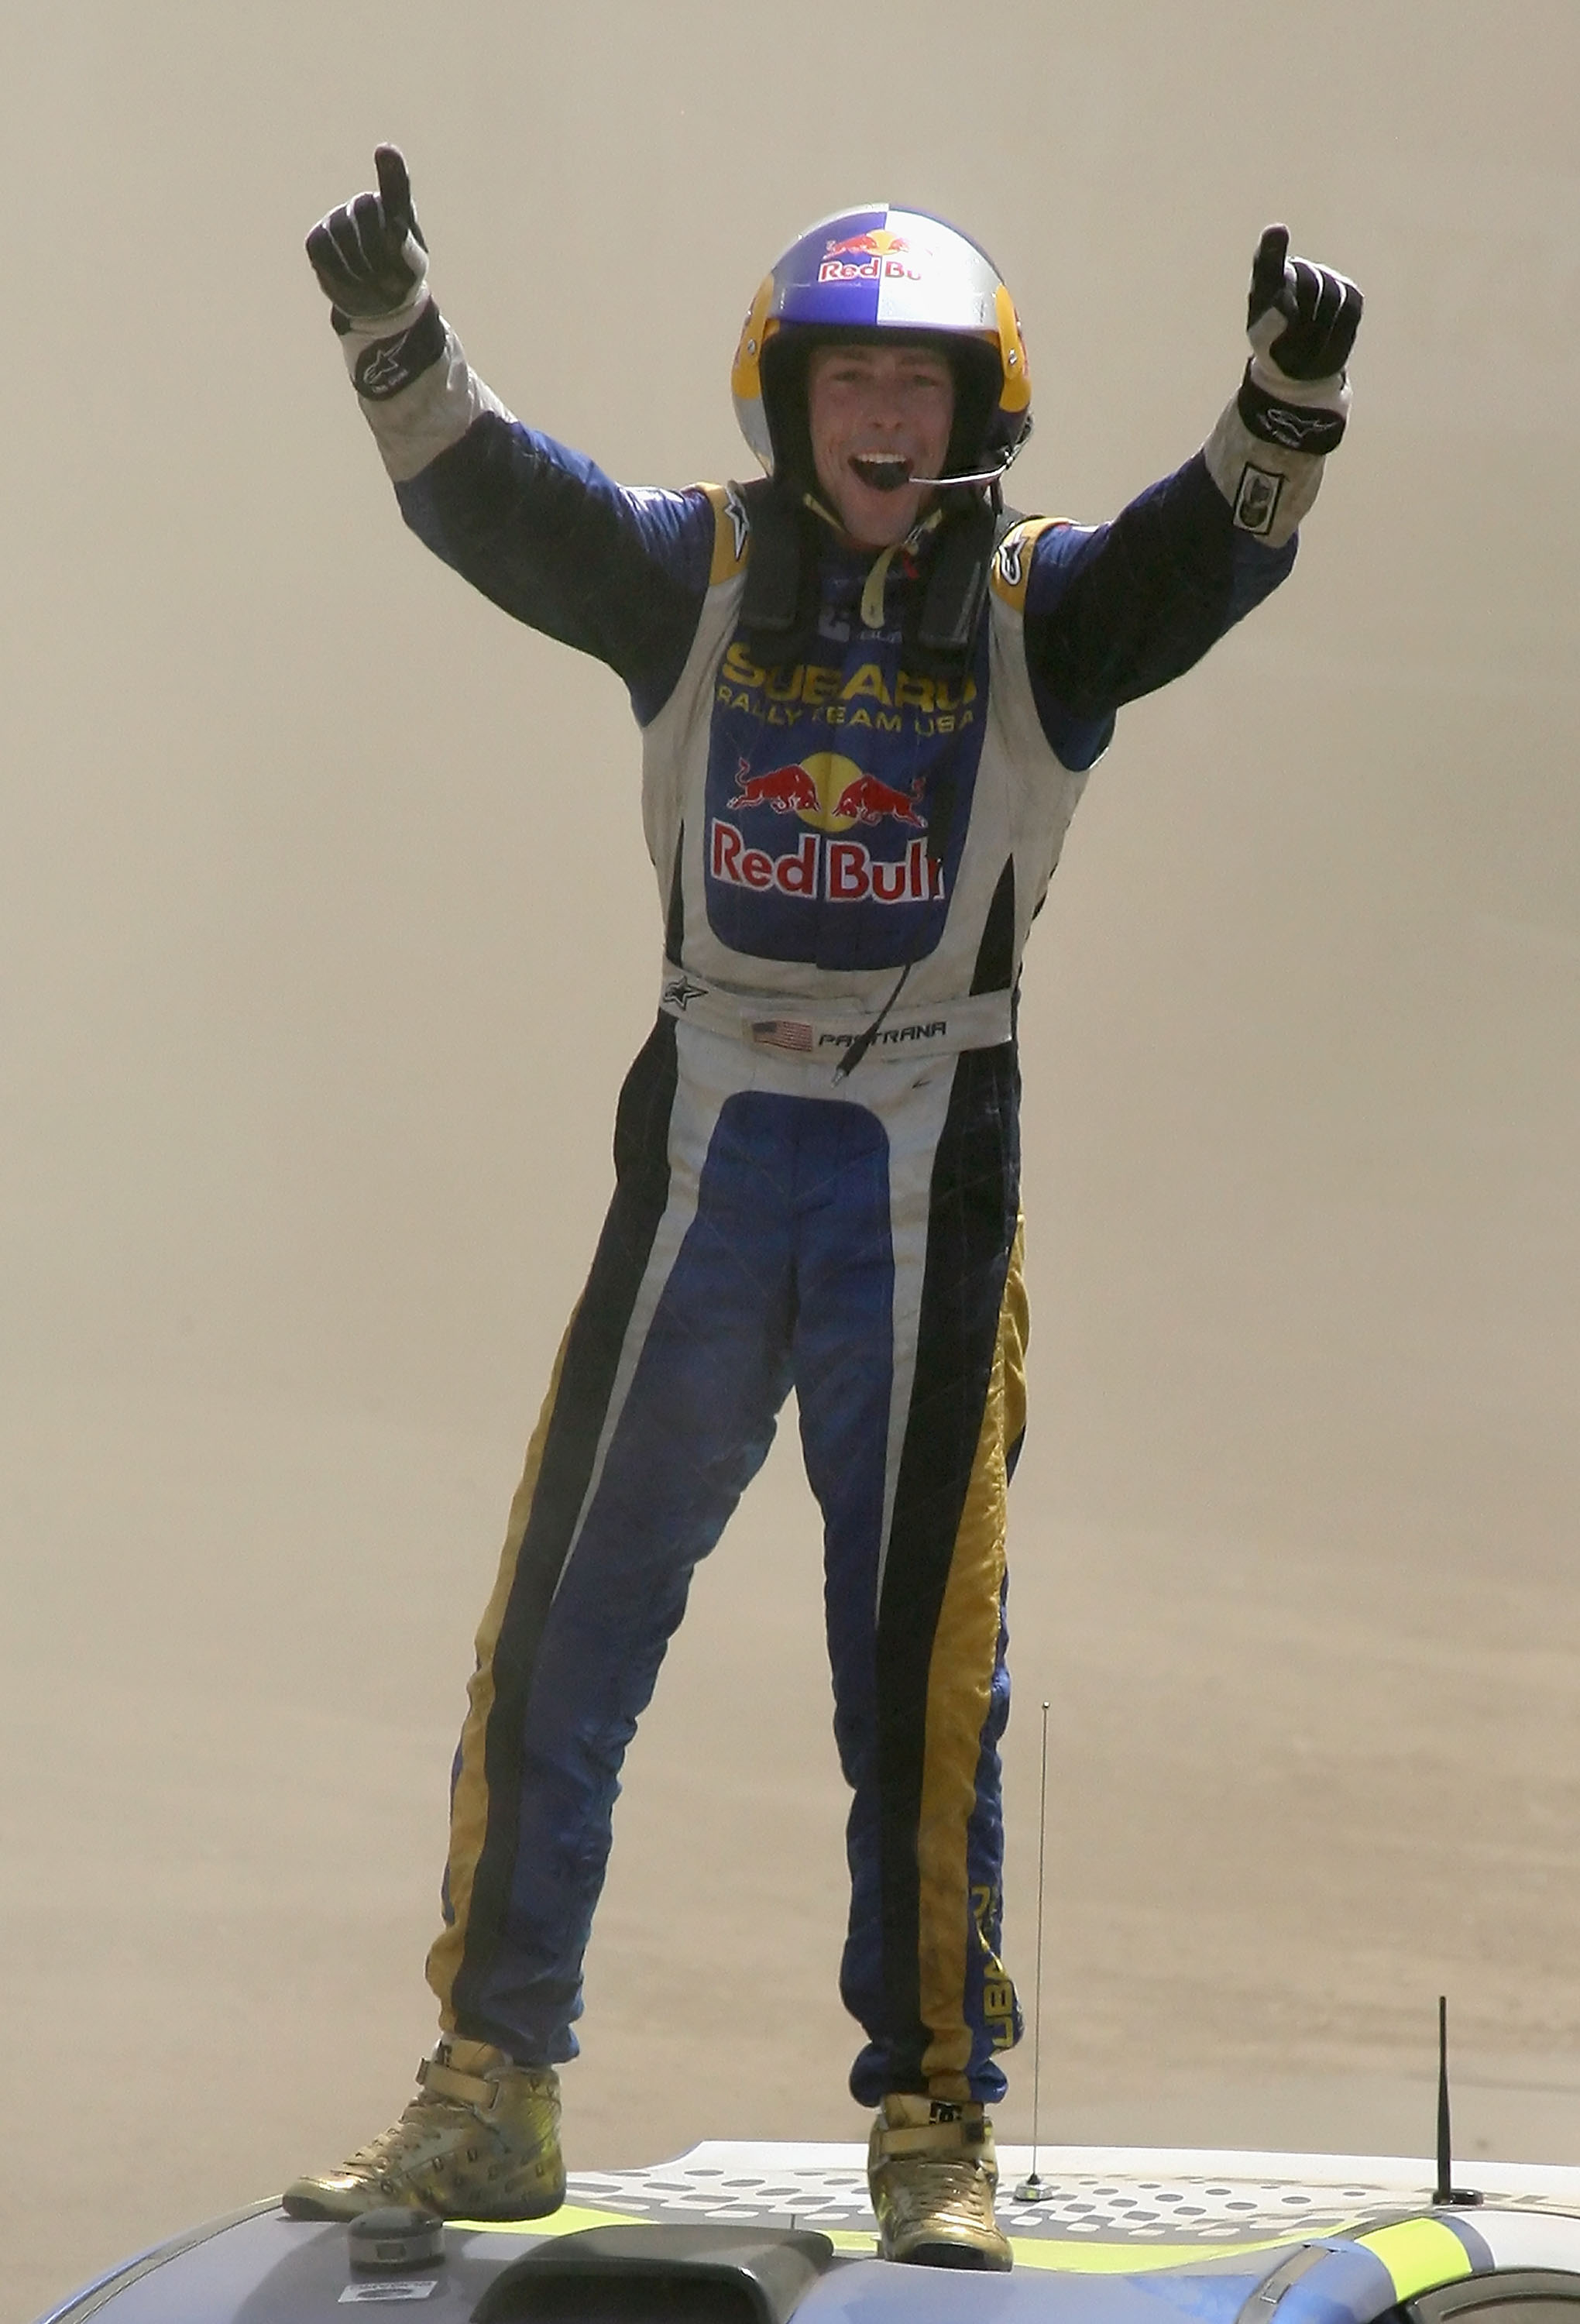 CARSON, CA - AUGUST 03:  Gold medal winner Travis Pastrana celebrates after winning the Rally Car race during the summer X Games 14 at Home Depot Center on August 3, 2008 in Carson, California.  (Photo by Christian Petersen/Getty Images)